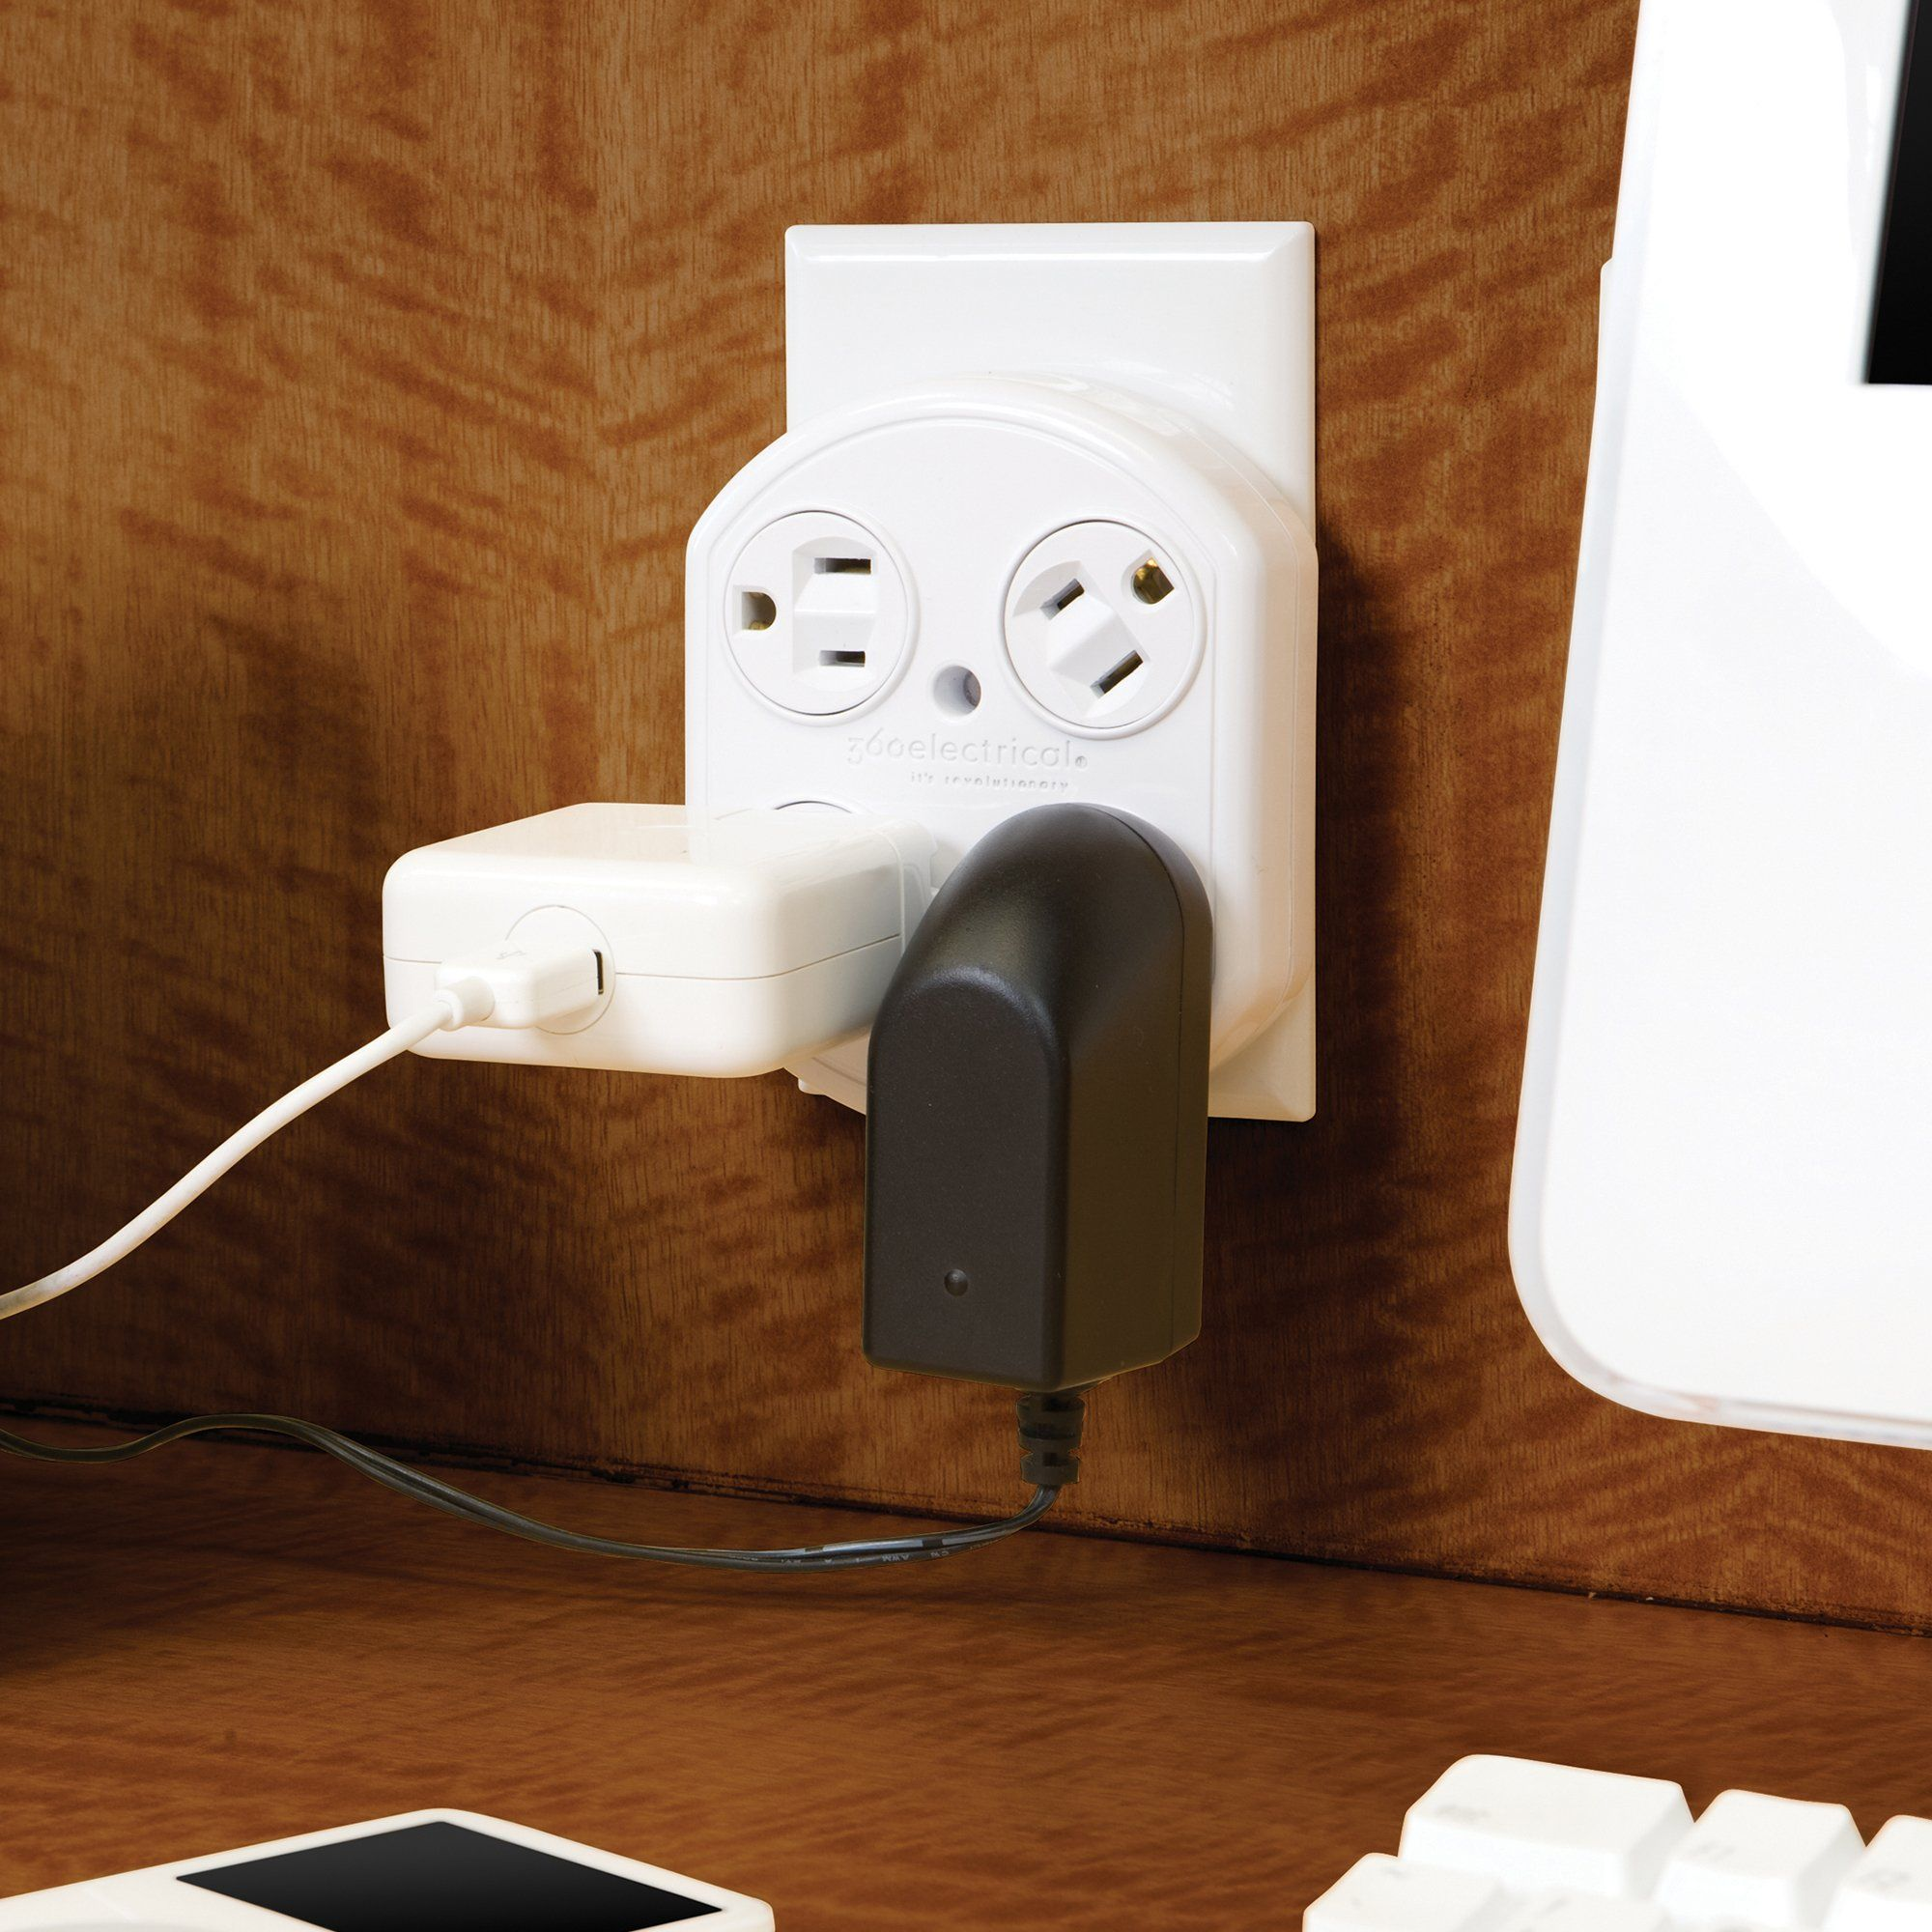 Rotating Surge Protector Surge Protector Fancy Stuff To Buy